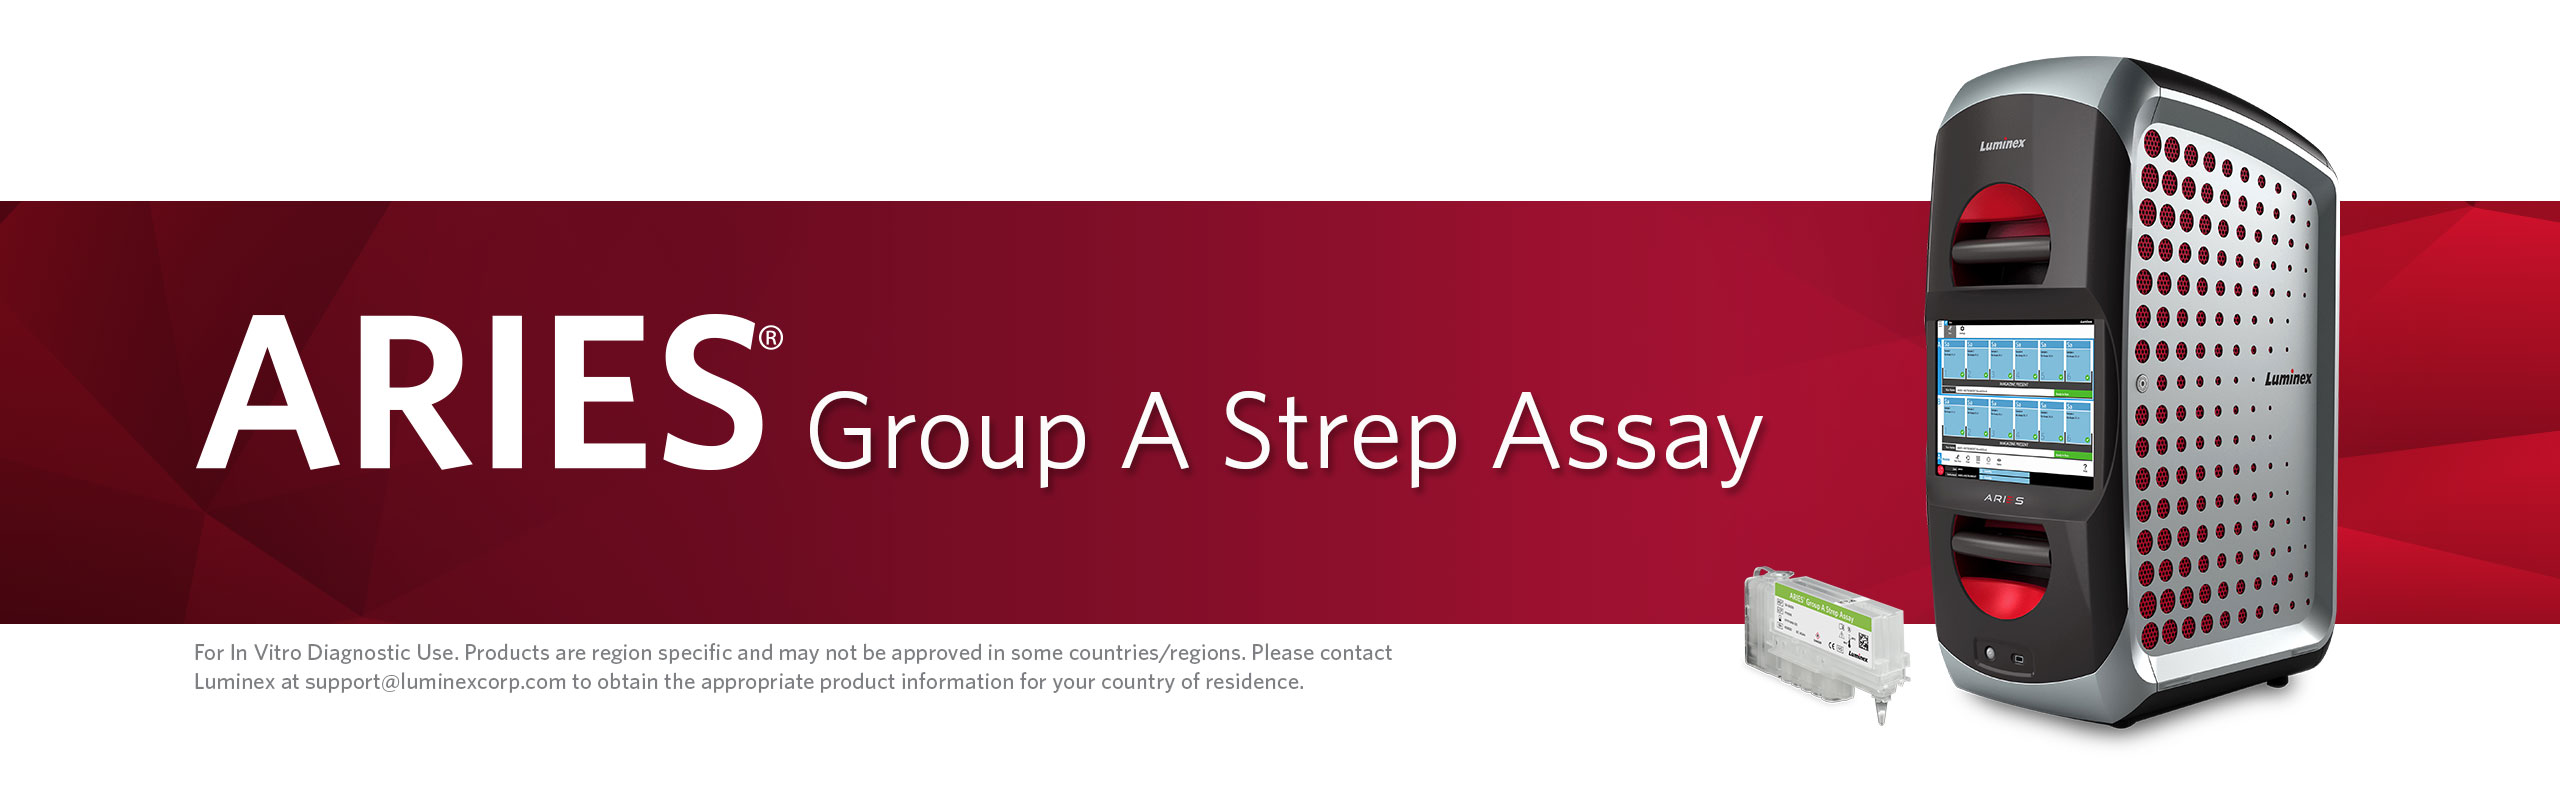 ARIES® Group A Strep Assay